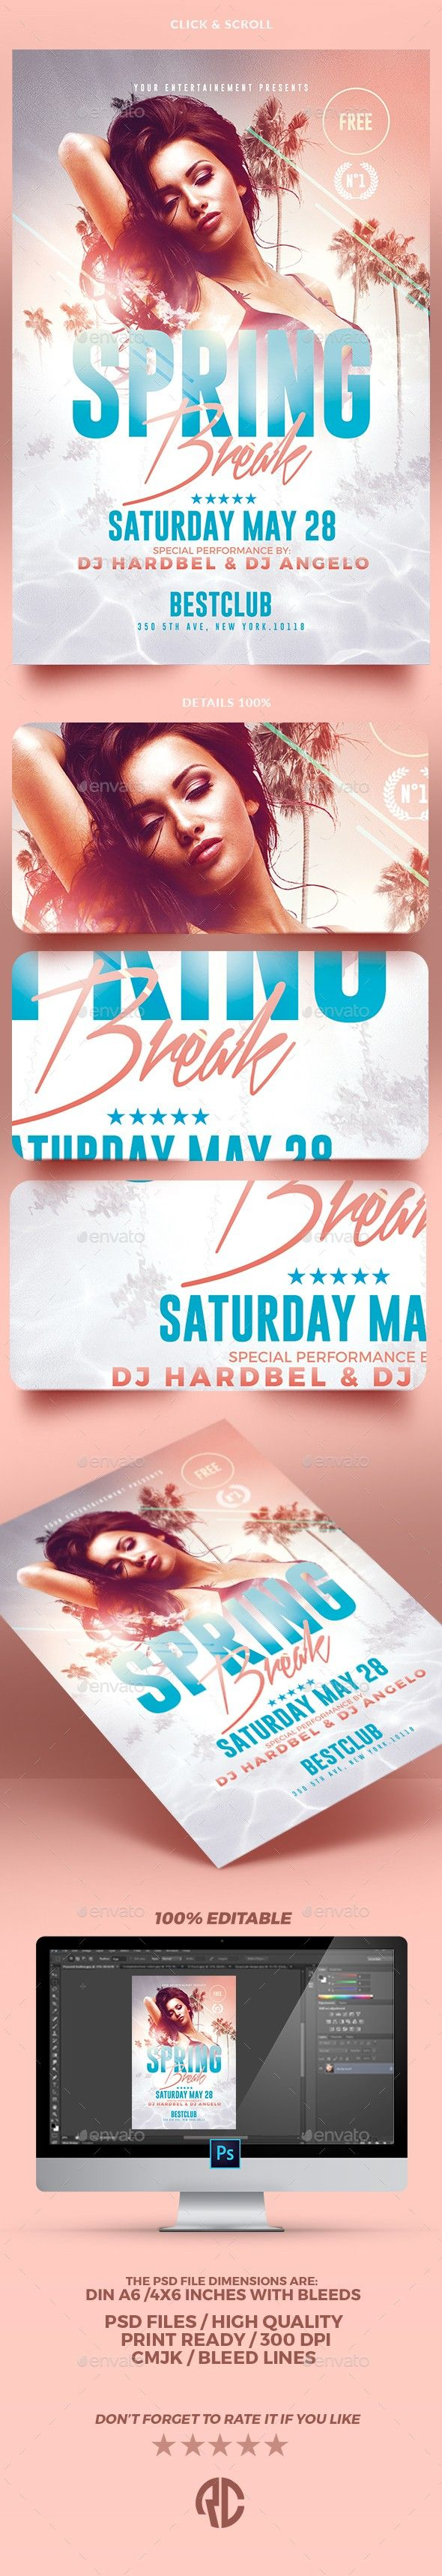 beach party, creative, electro, event, flyer design, flyers, holiday, hot, invitation, minimal, minimalist, music, opening, palm, party, party flyer, poster, print, sexy, spring, spring break, spring break party, Spring Party, summer, summer party, template, templates Spring Break Flyer Templates Exclusive Template, Very easy to Edit and Creative Design perfect to promote your Spring Break Party ! Package Features: 1 PSD Files Included DIN A6 Format (6×8.4 inches with bleeds ) CM…